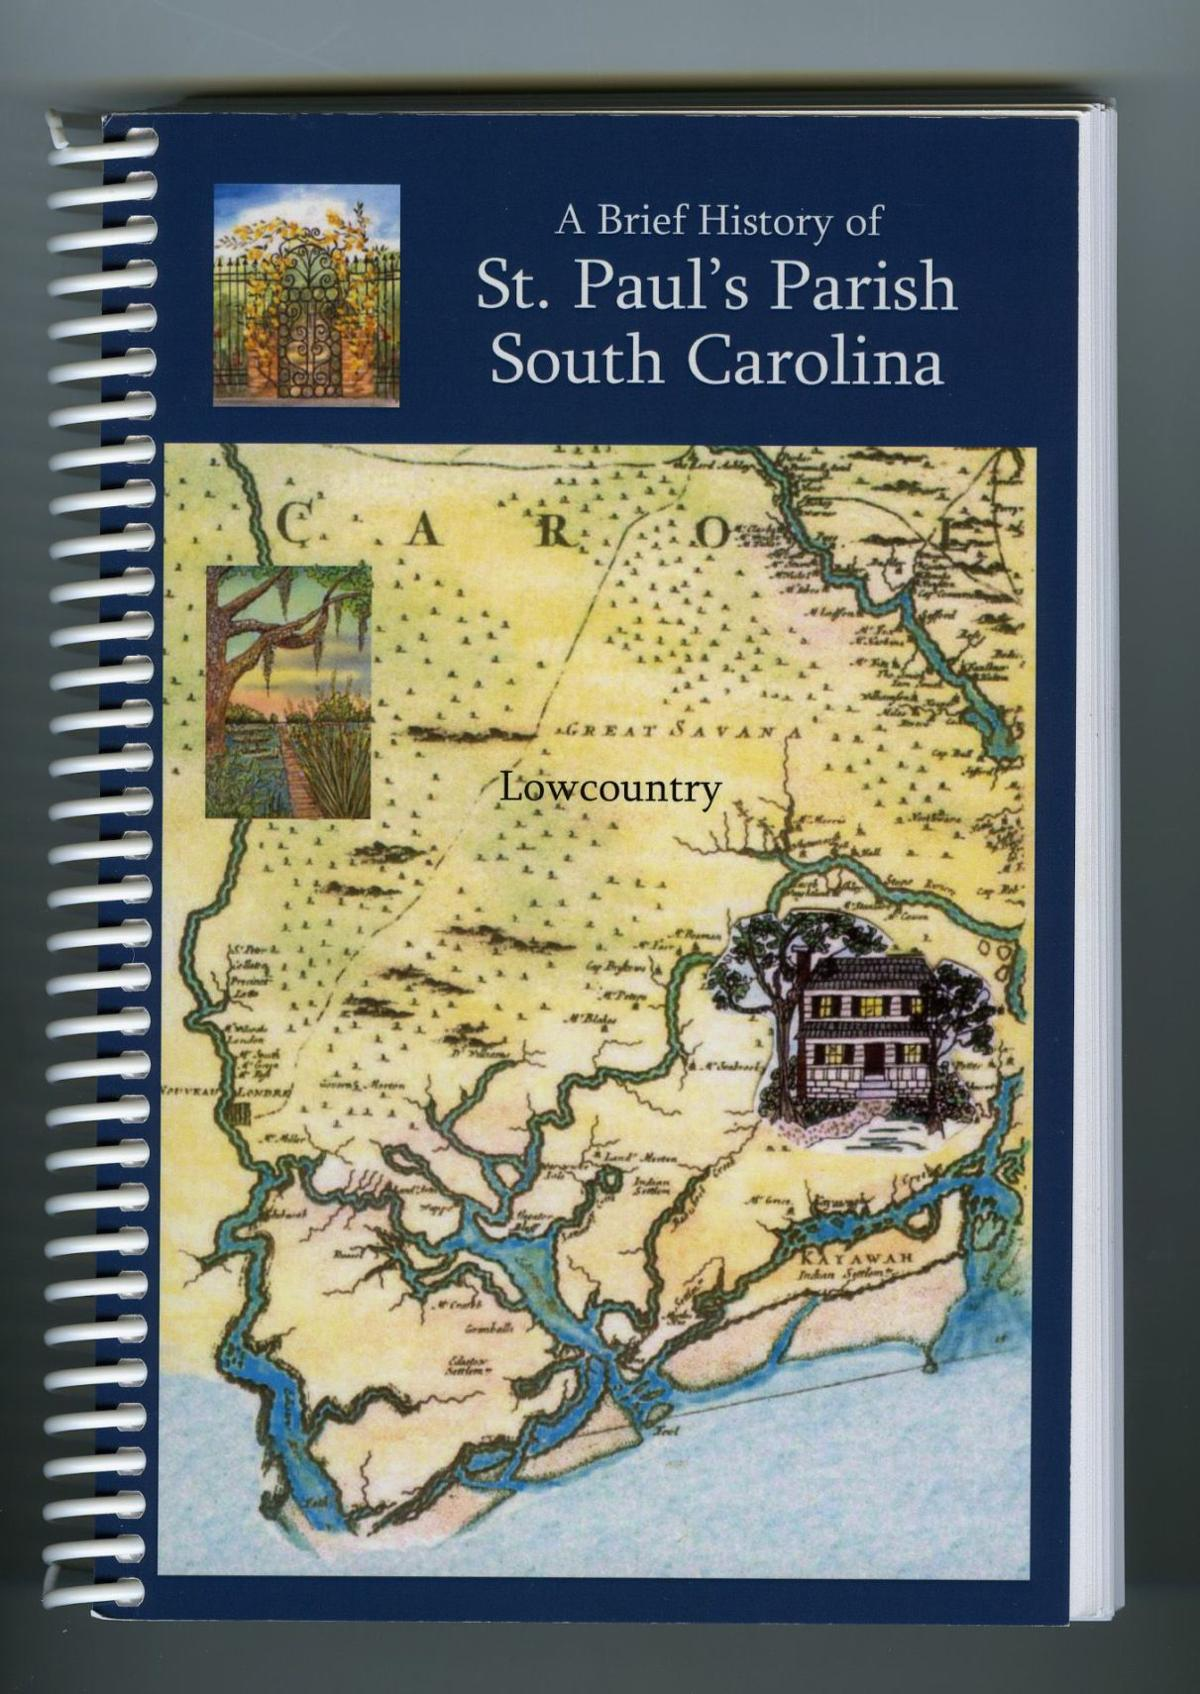 St. Paul's cookbook serves up history with family recipes